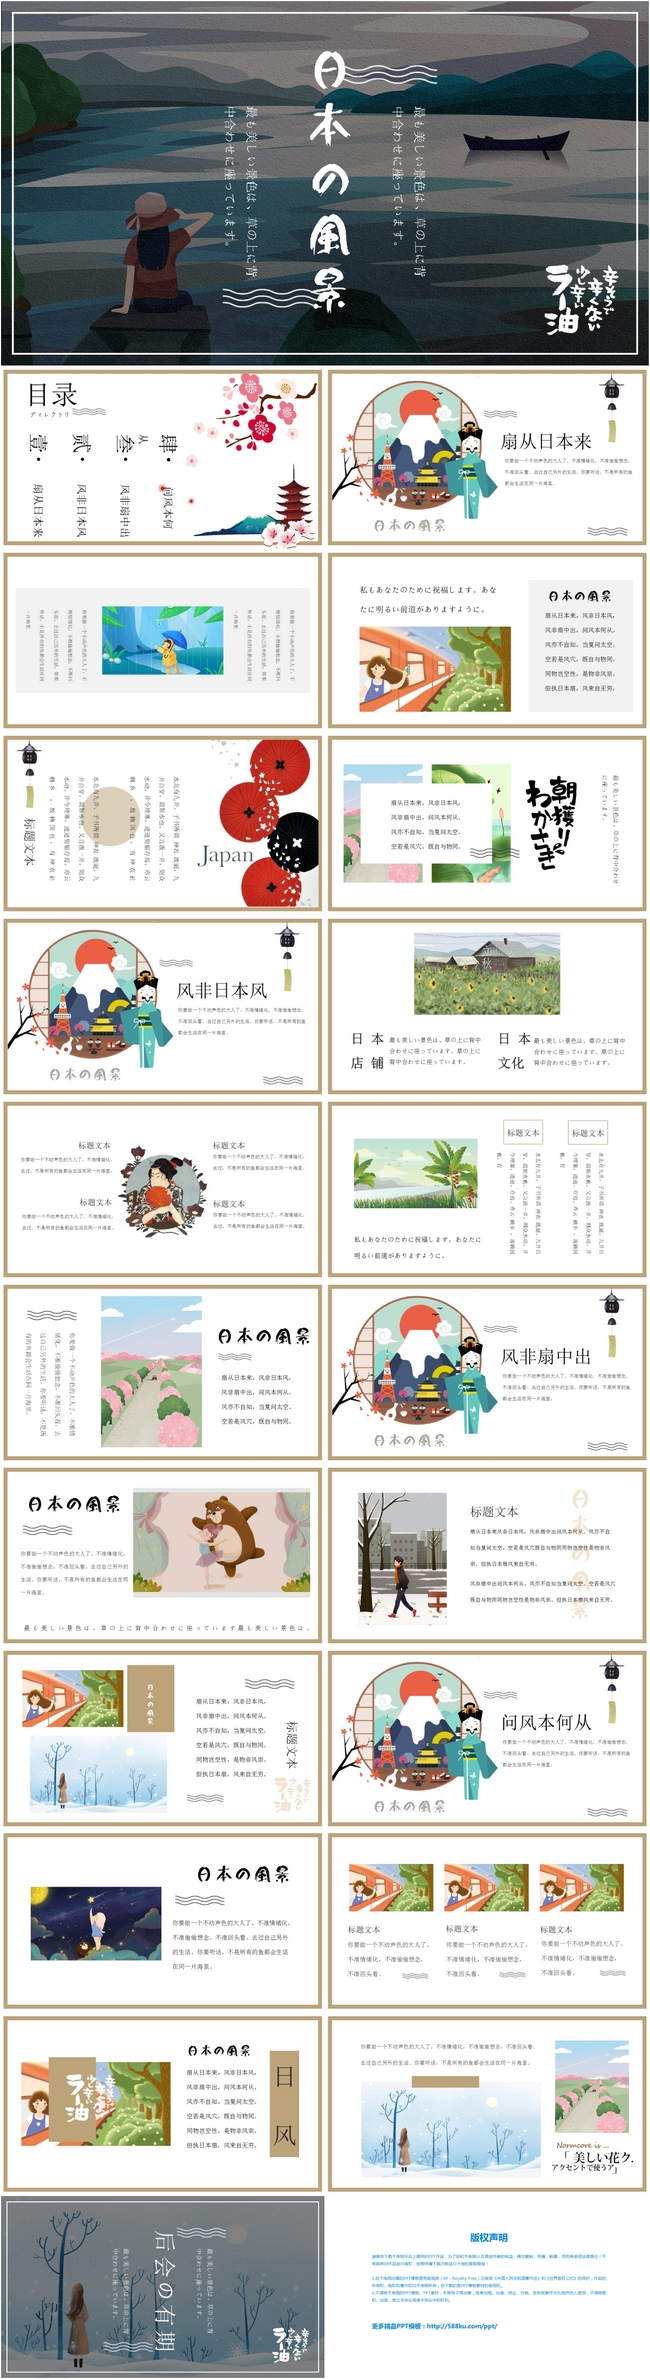 Japanese Style Book Wind Travel Guide Album Ppt Template Powerpoint Templete Ppt Free Download 650091457 Lovepik Com